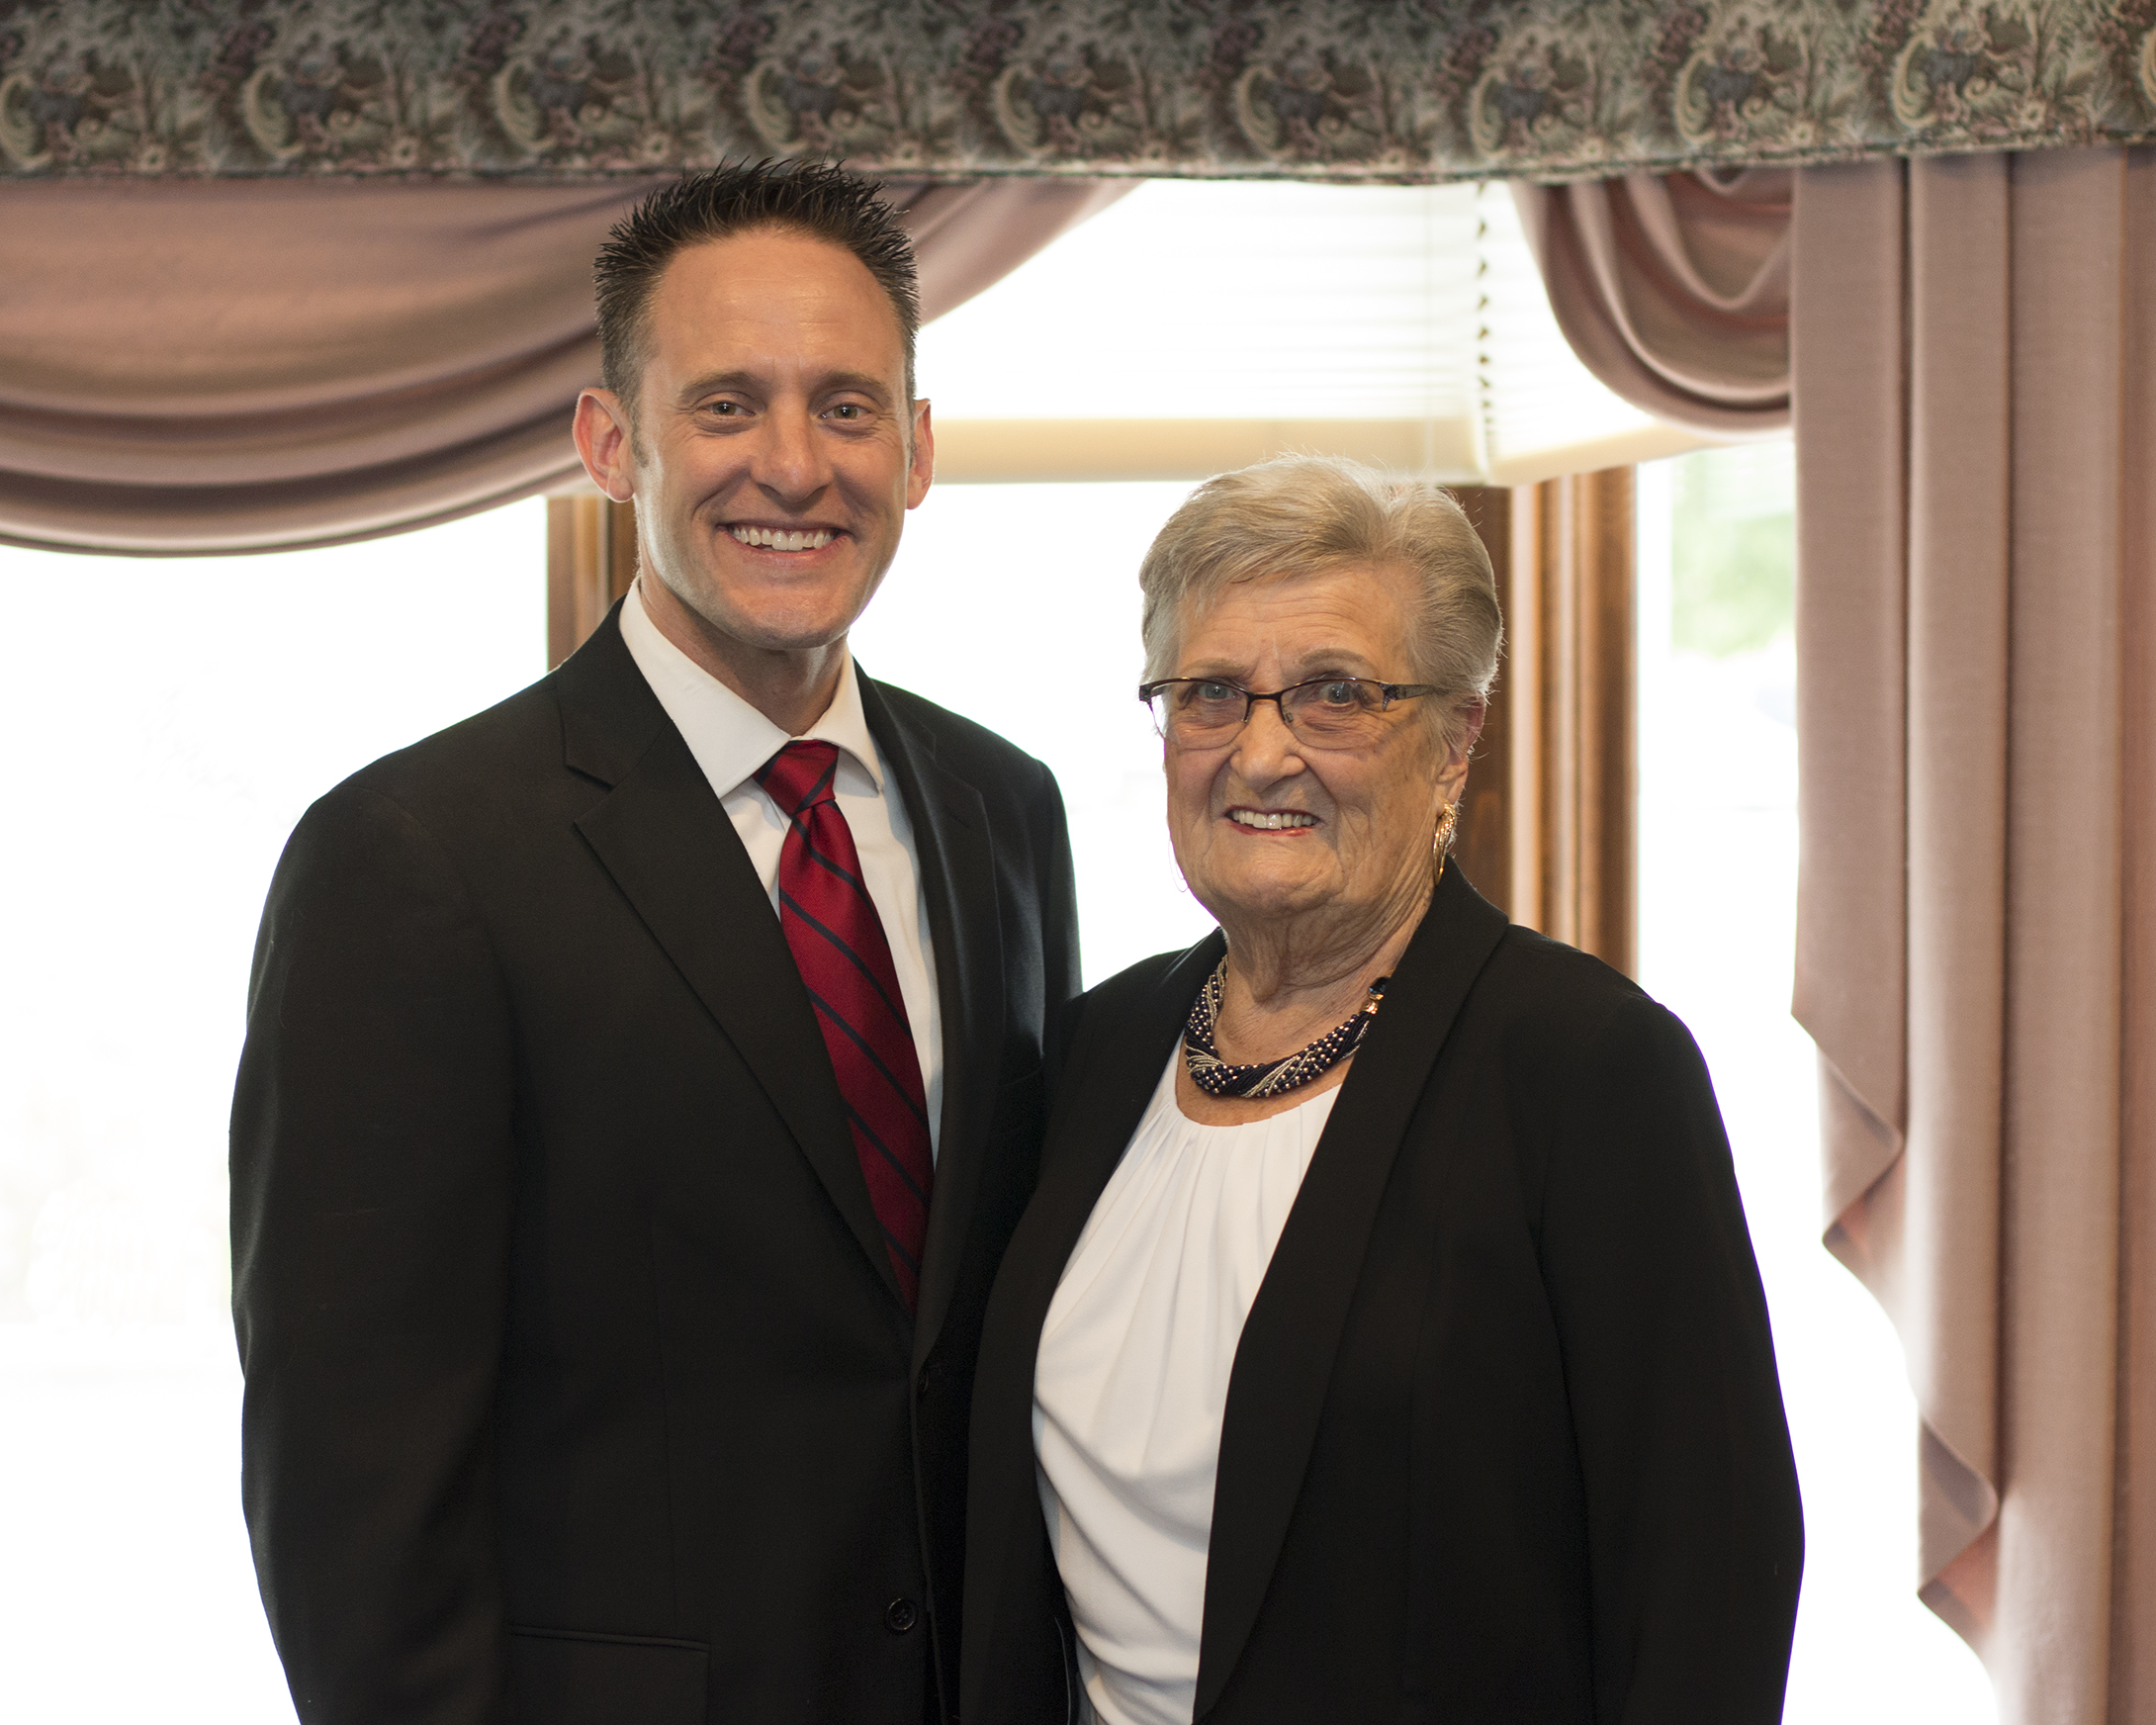 Piasecki Funeral Home Proudly Welcomes Matthew Martin as New Partner